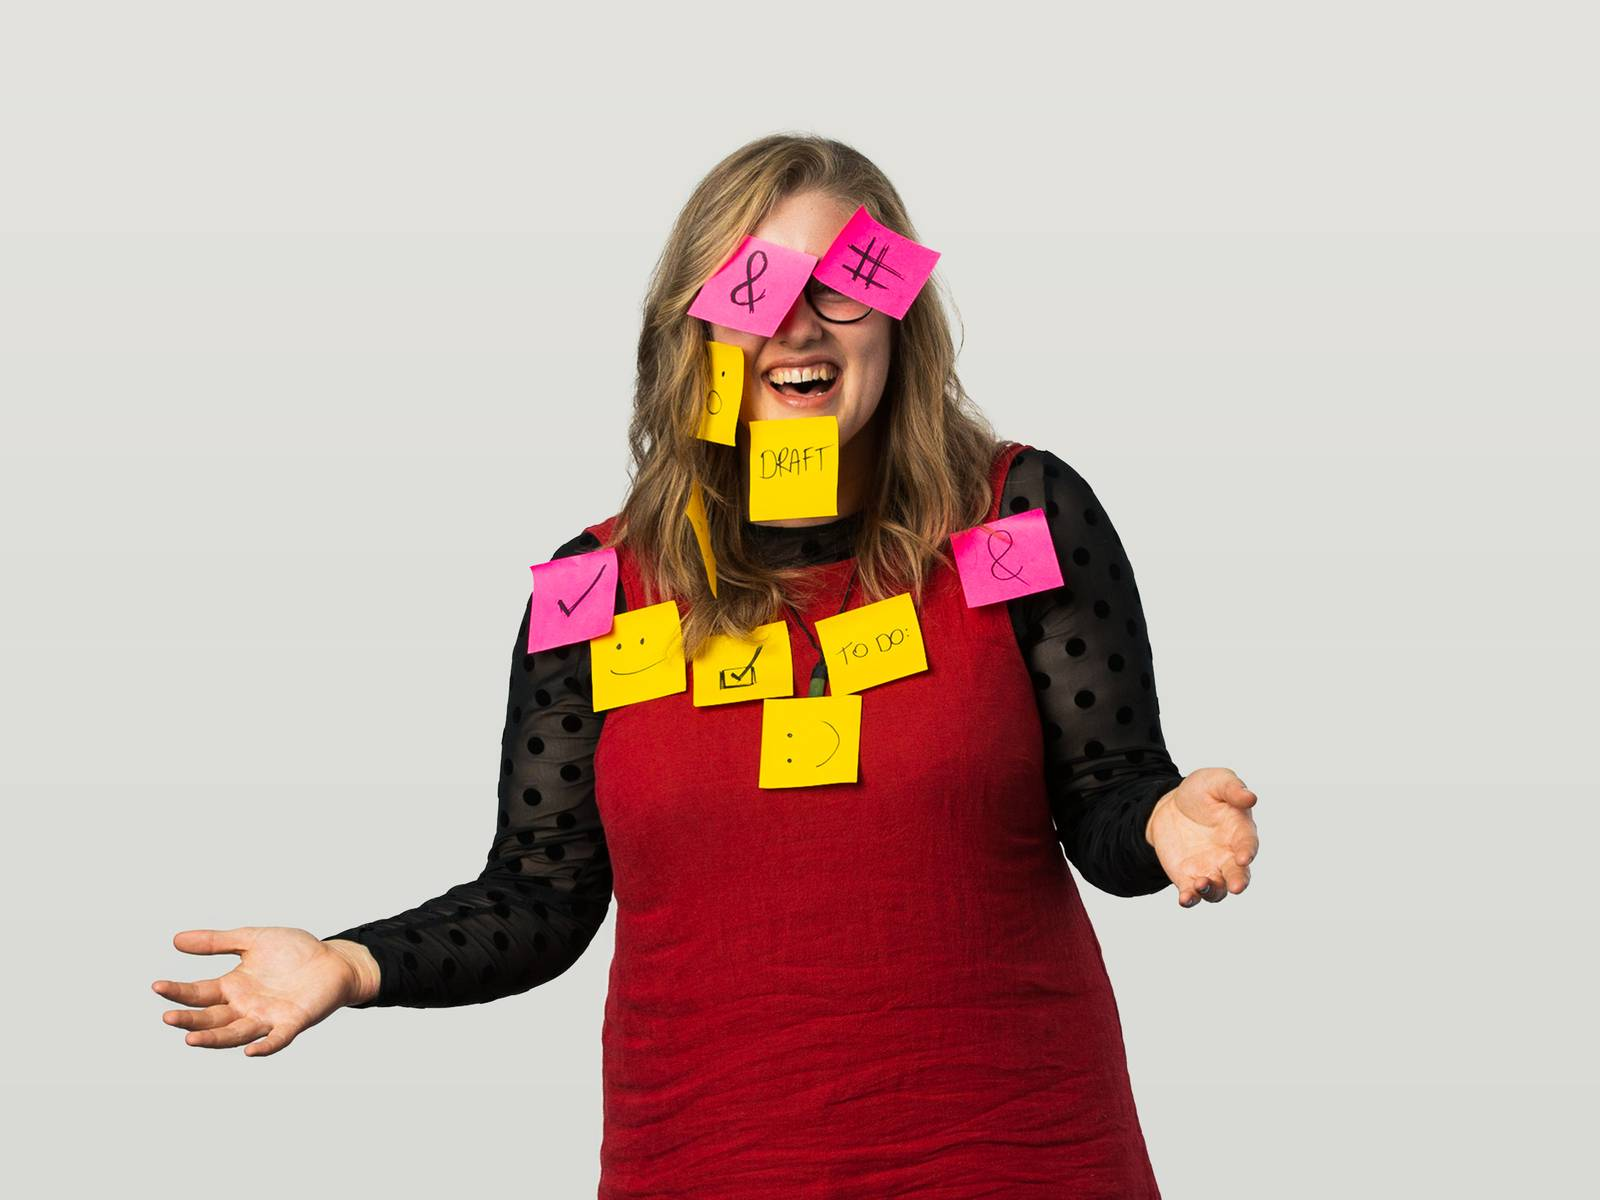 Lucy covered in post-it notes